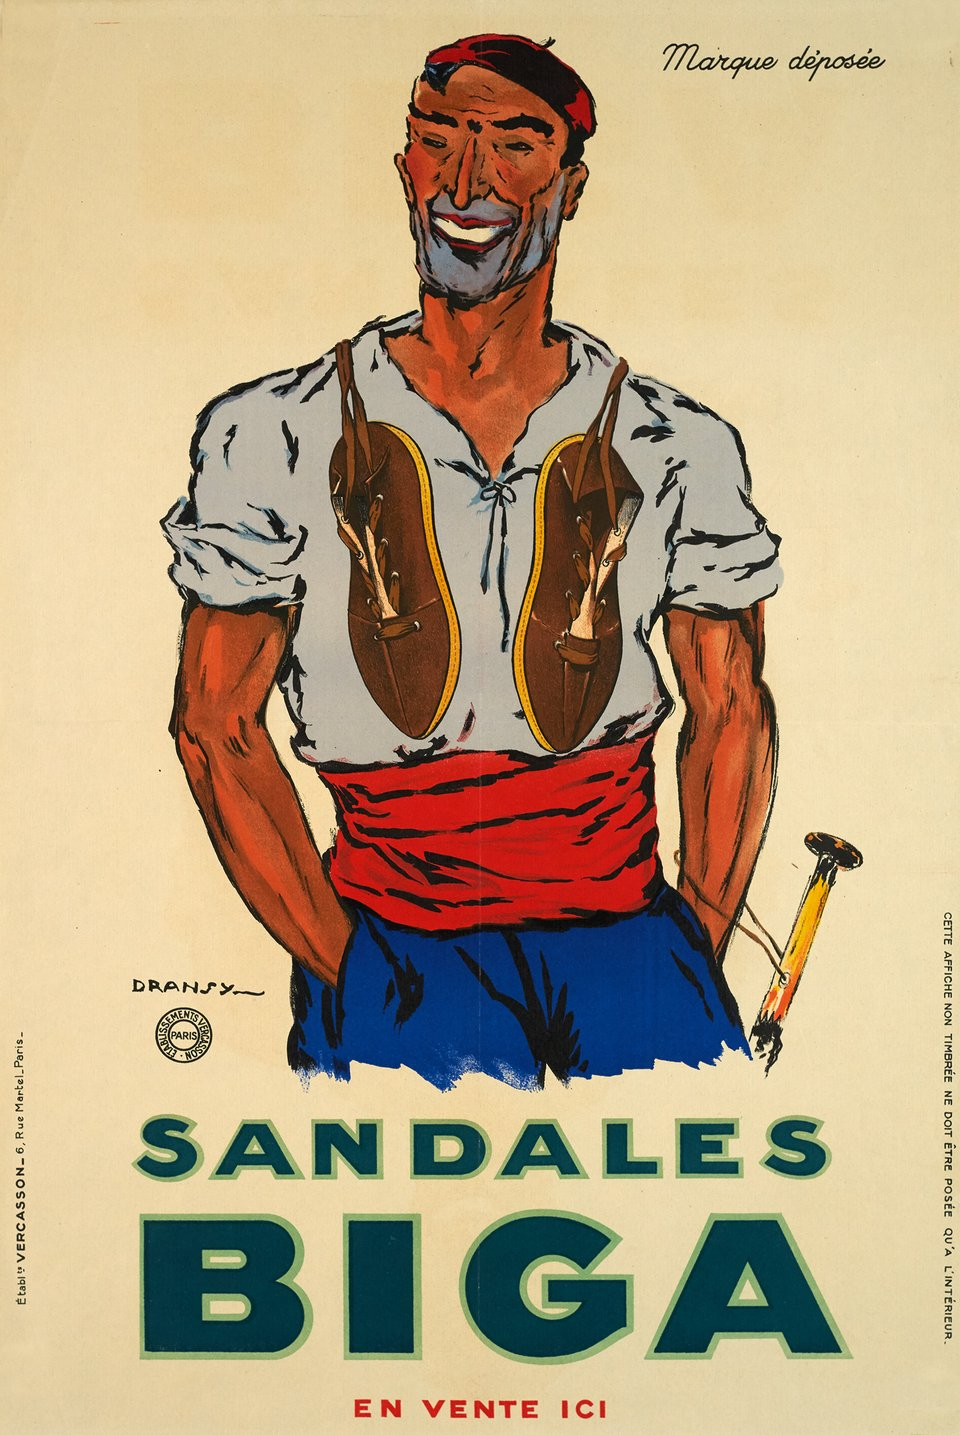 Sandales Biga – Affiche ancienne –  DRANSY, Jules ISNARD – 1930